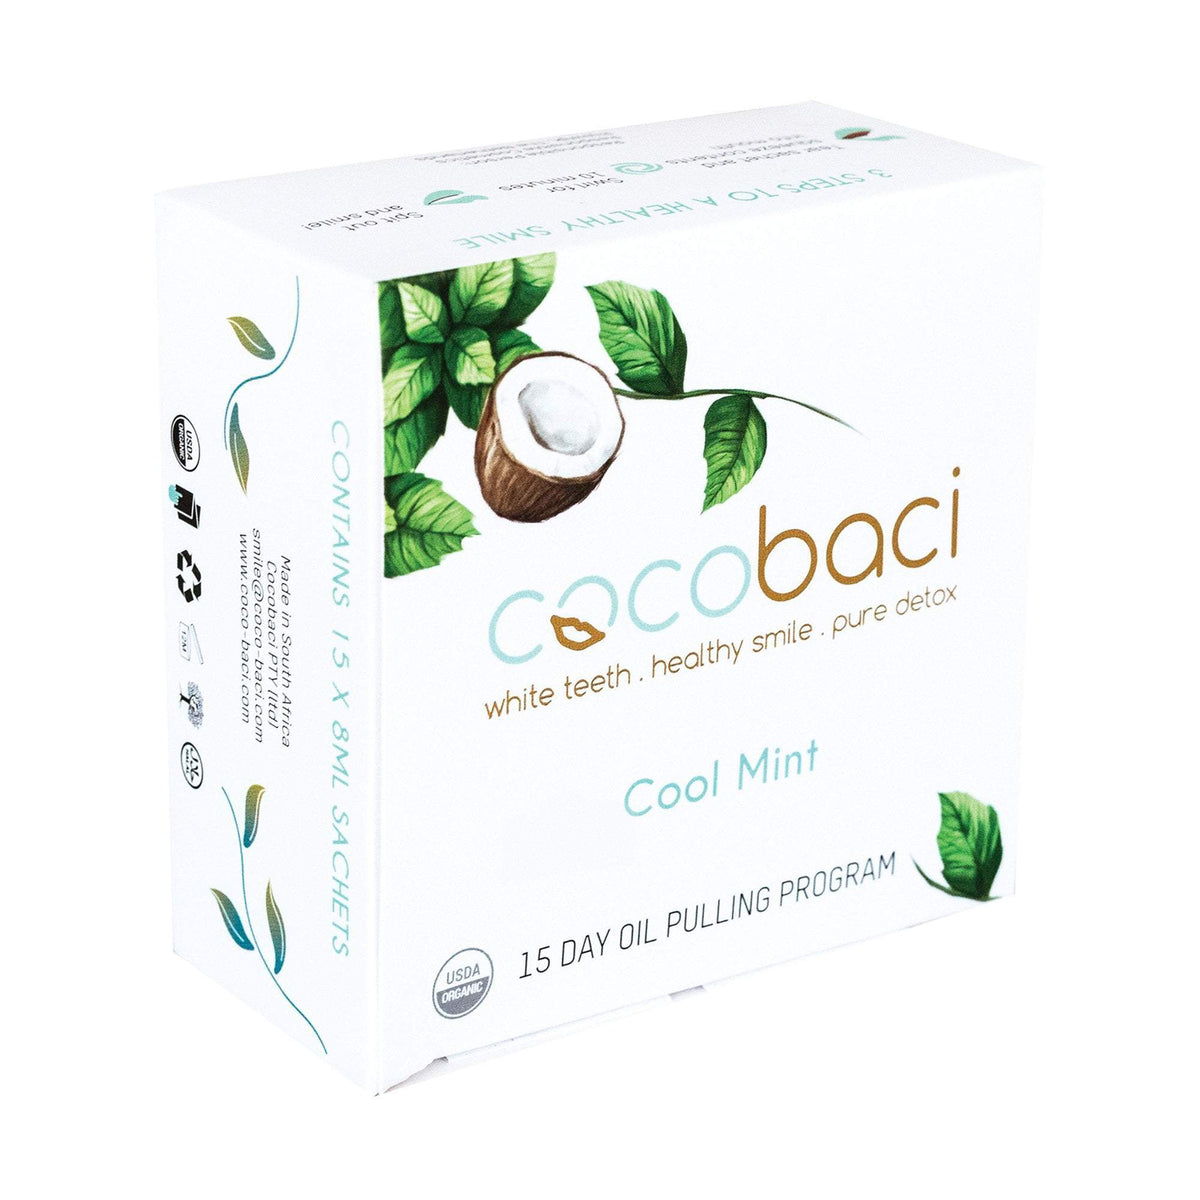 Cocobaci Cool Mint 15 Day Oil Pulling Program